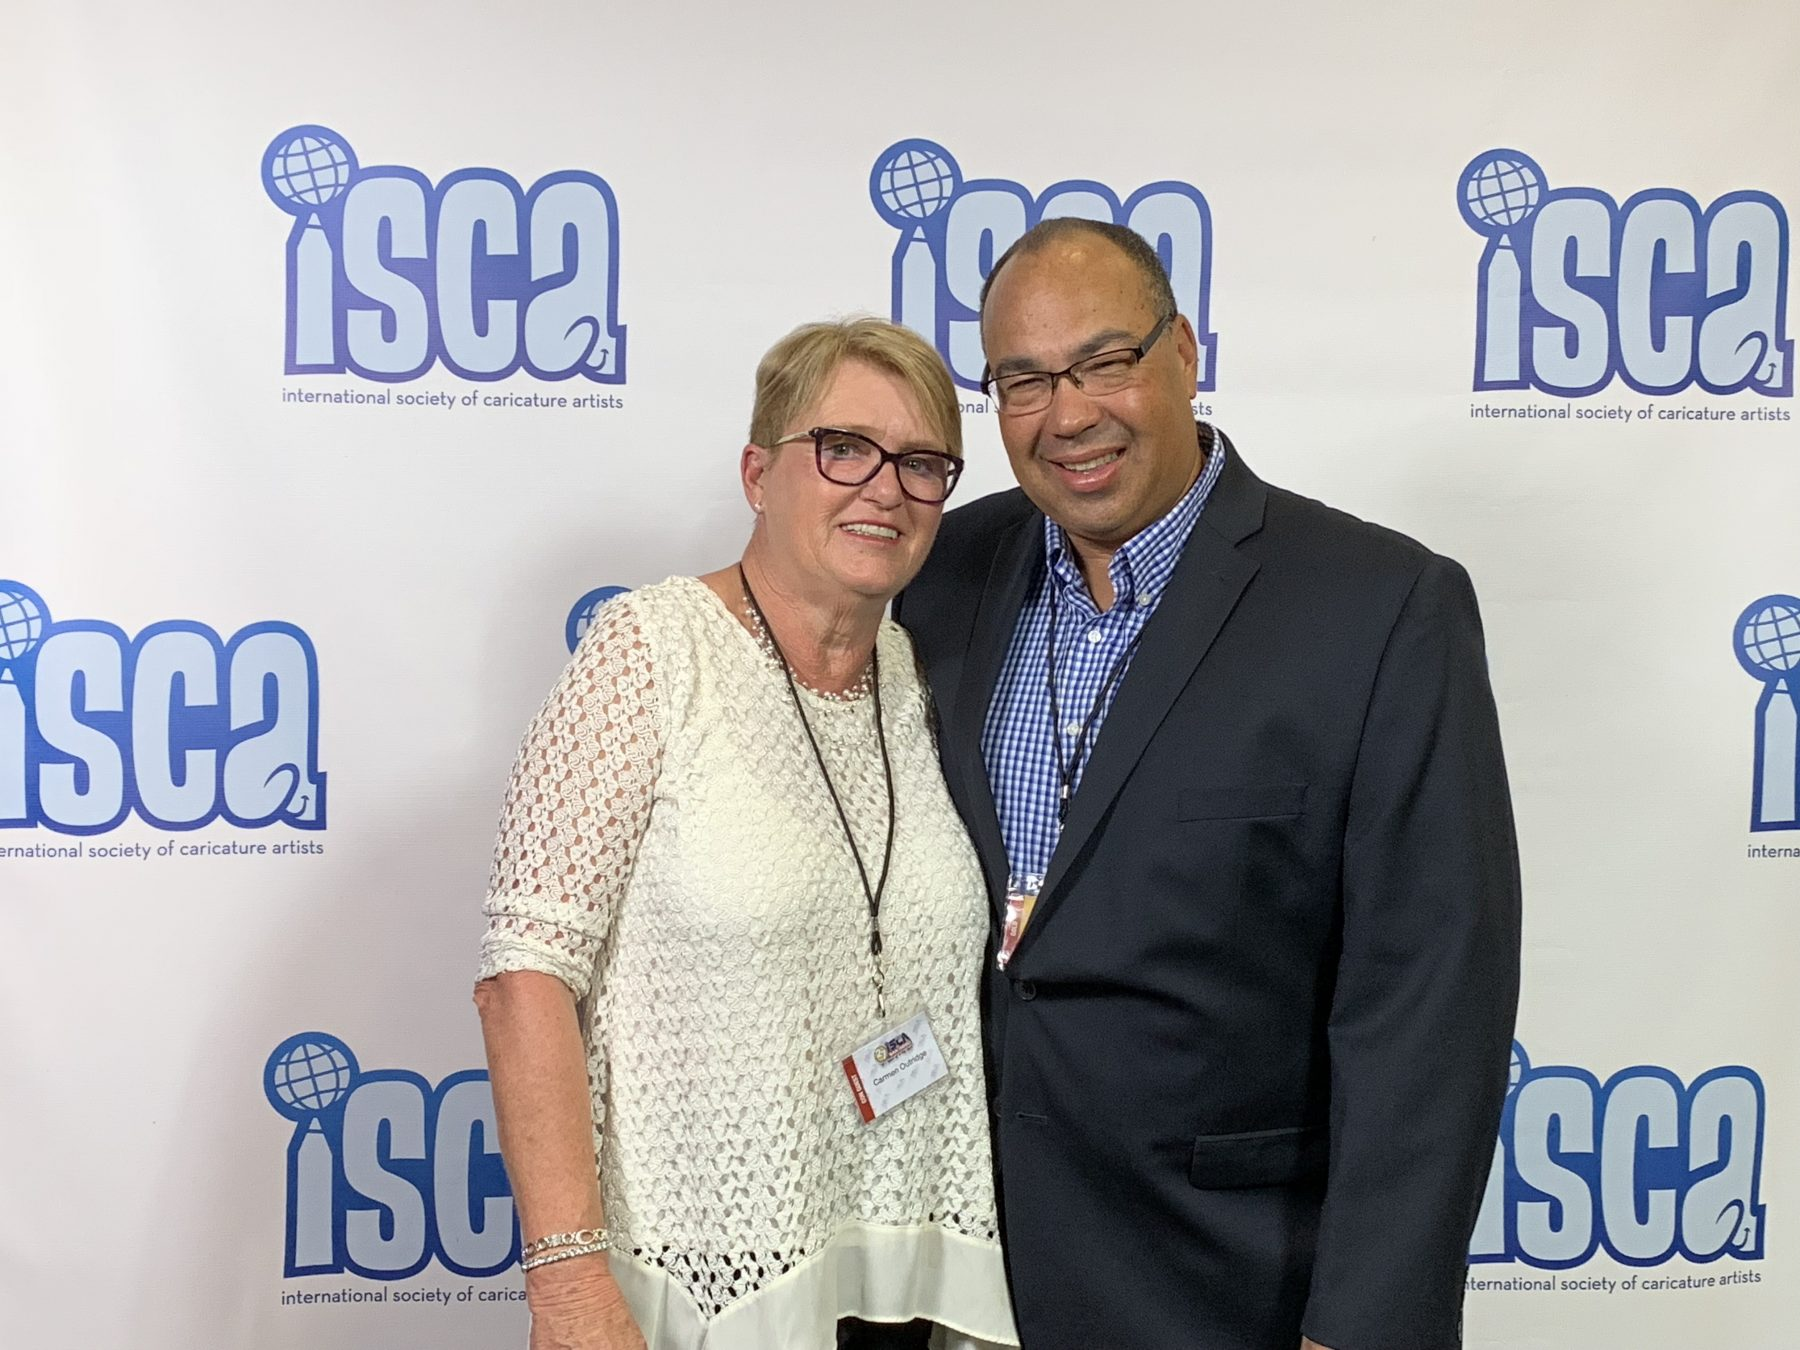 ISCA Conference Picture 2018